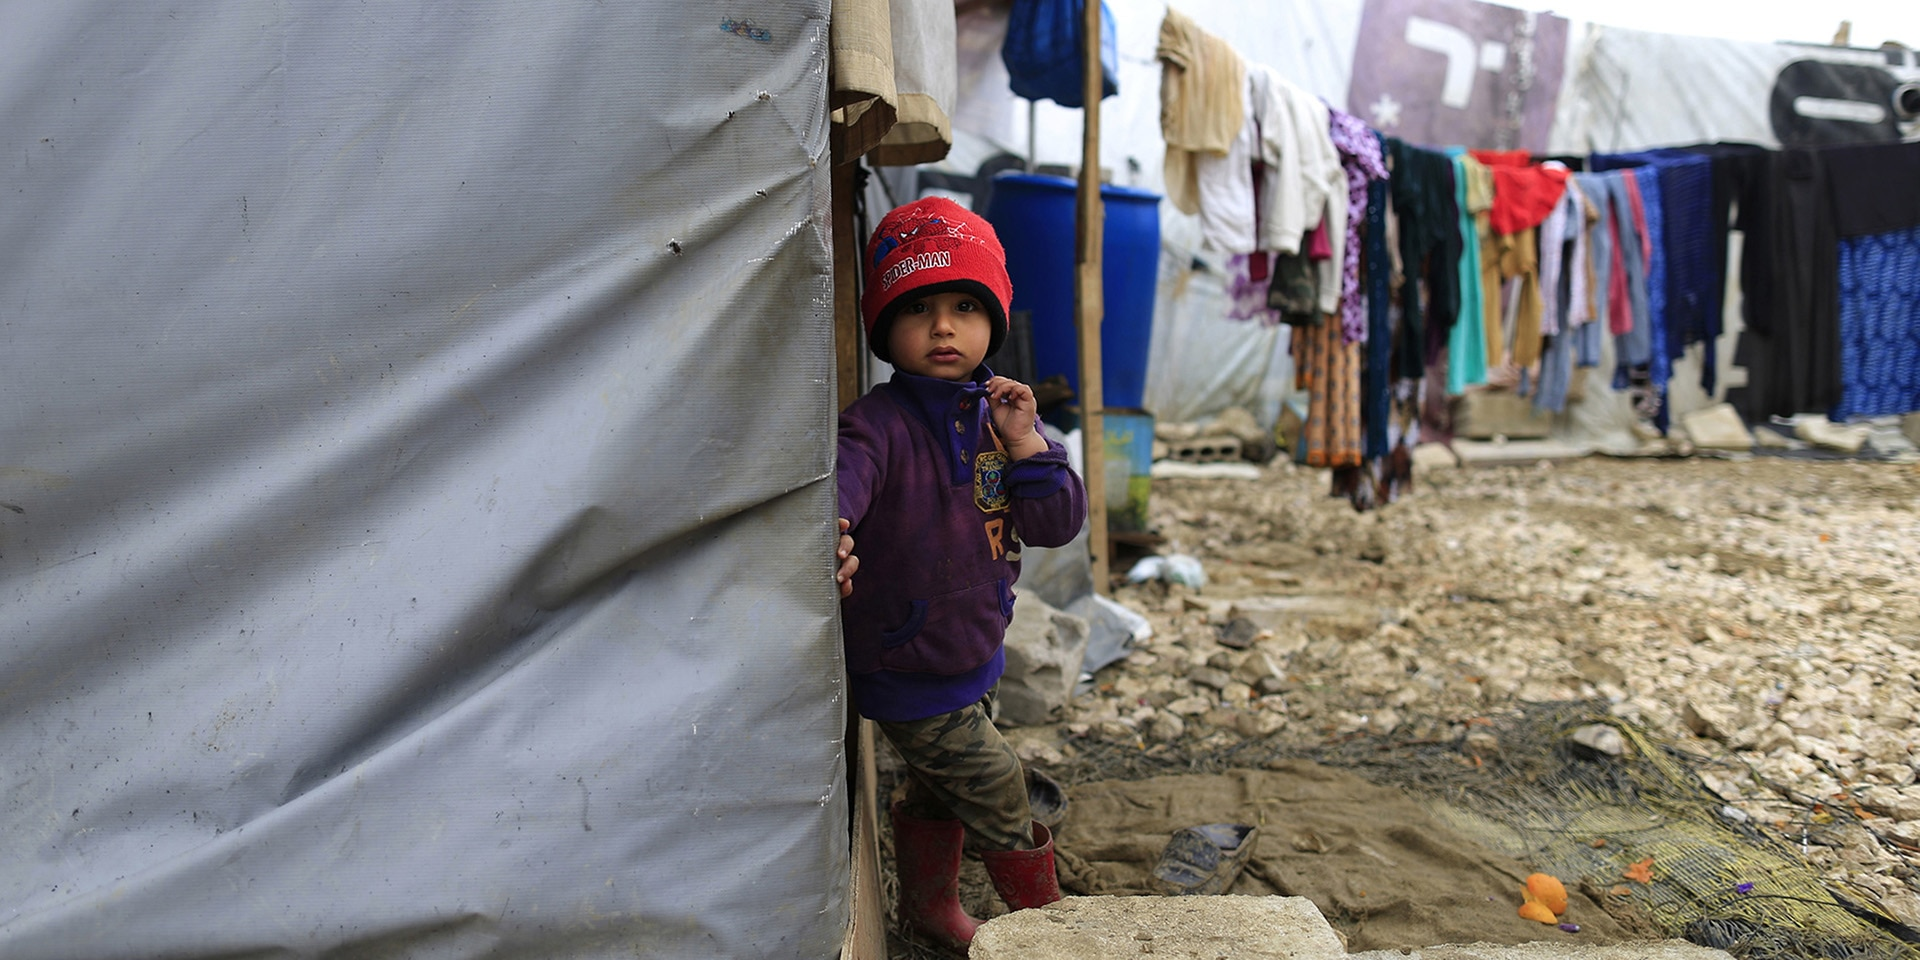 A Syrian refugee boy stands outside his family's tent after heavy rain.